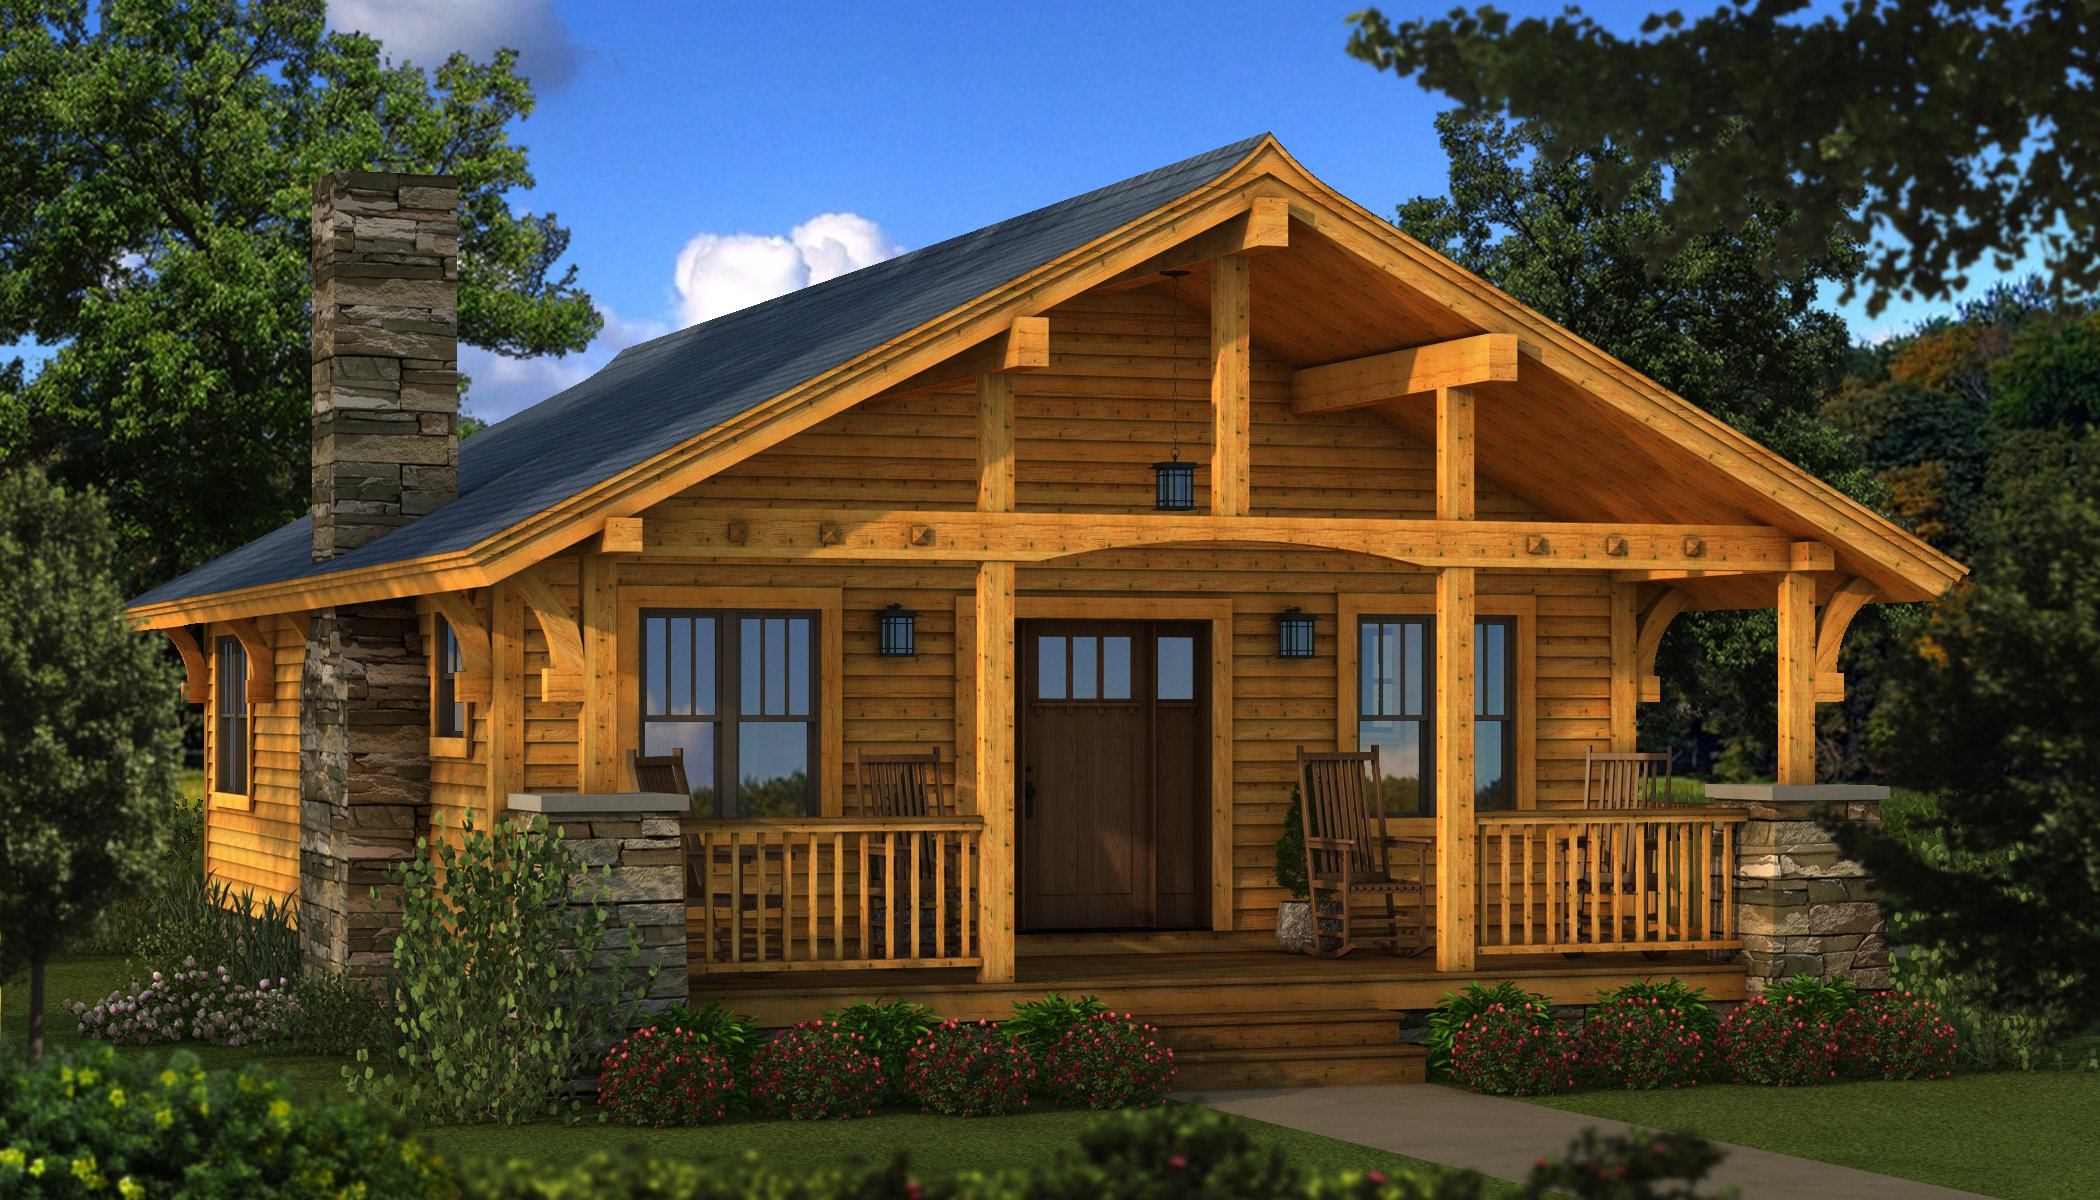 Timber Frame Home And Boat Shelter Rustic Garage New York further Whistler II in addition Greenterrahomes additionally Installing A Twin Wall Flue Chimney in addition Bungalow 2 Plans Information. on a frame cabin house plan